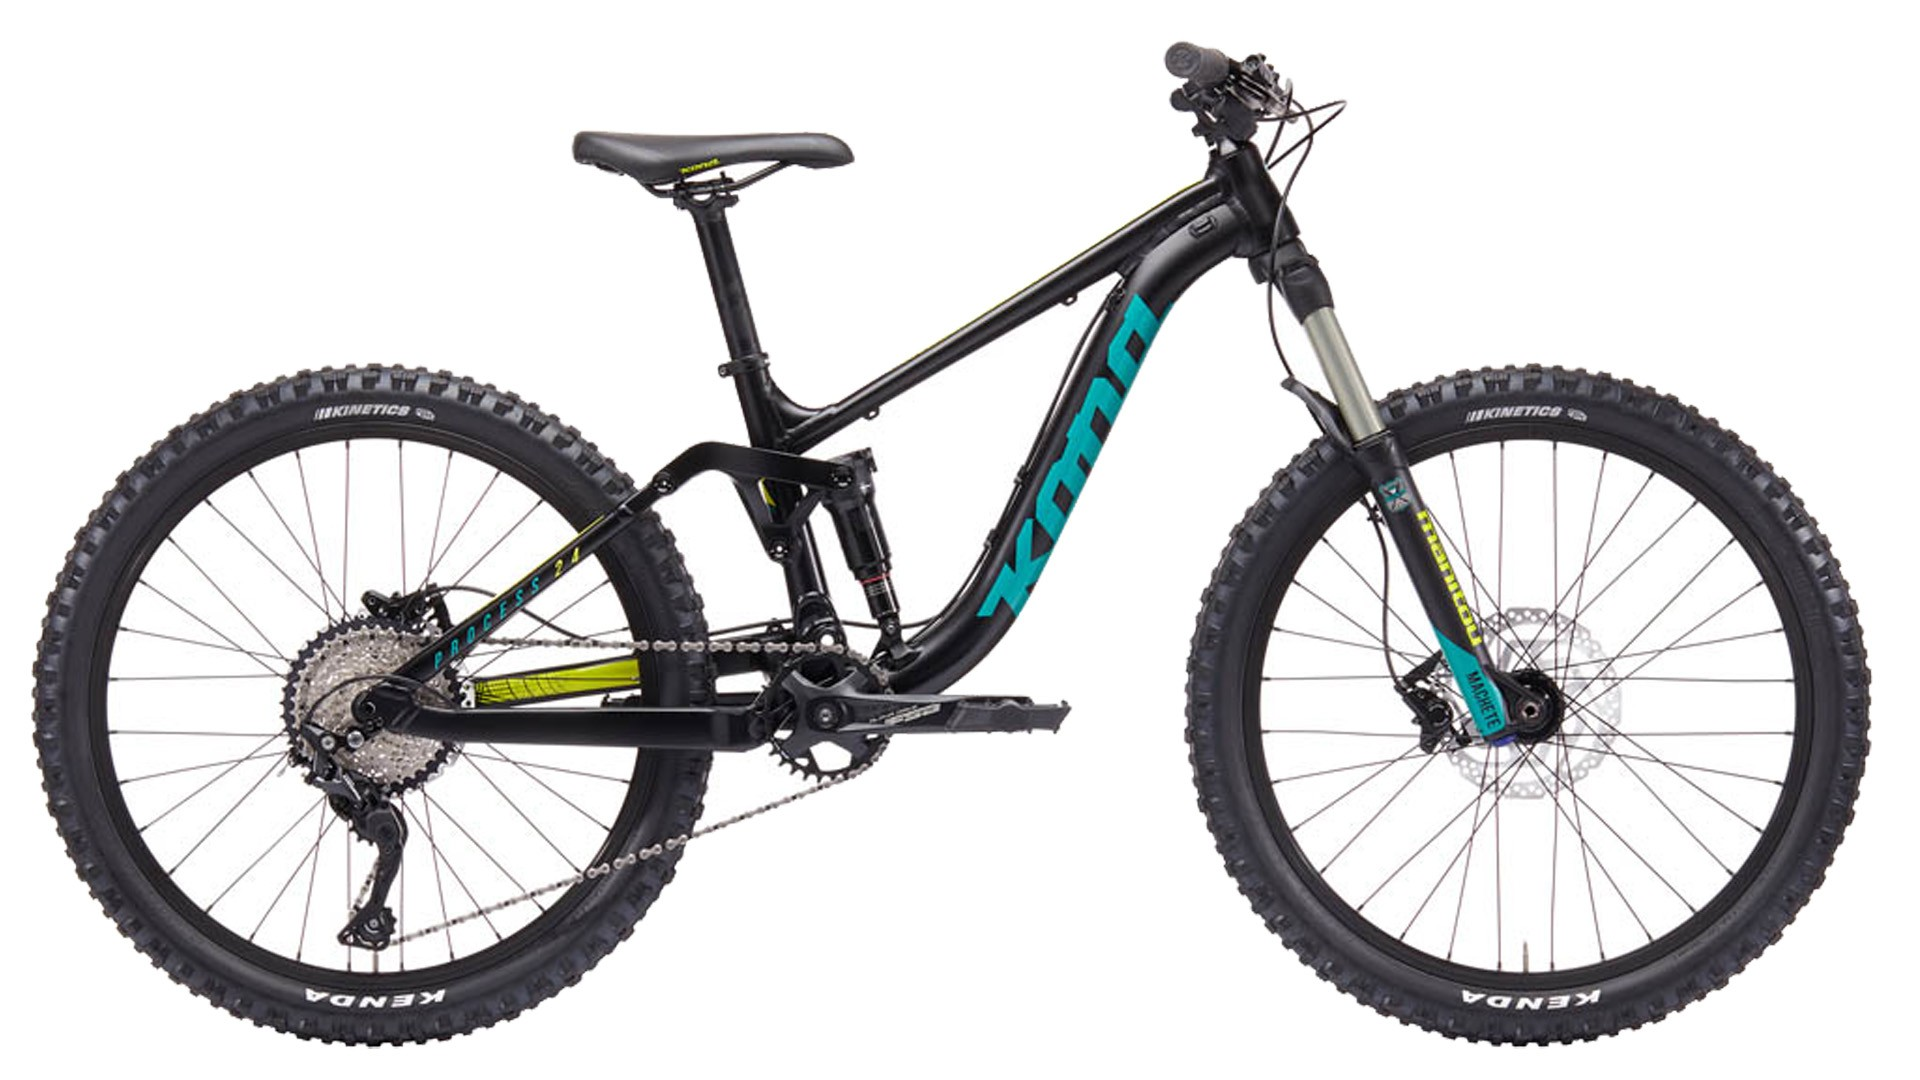 The Kona Process is a great bike for the young enduro rider